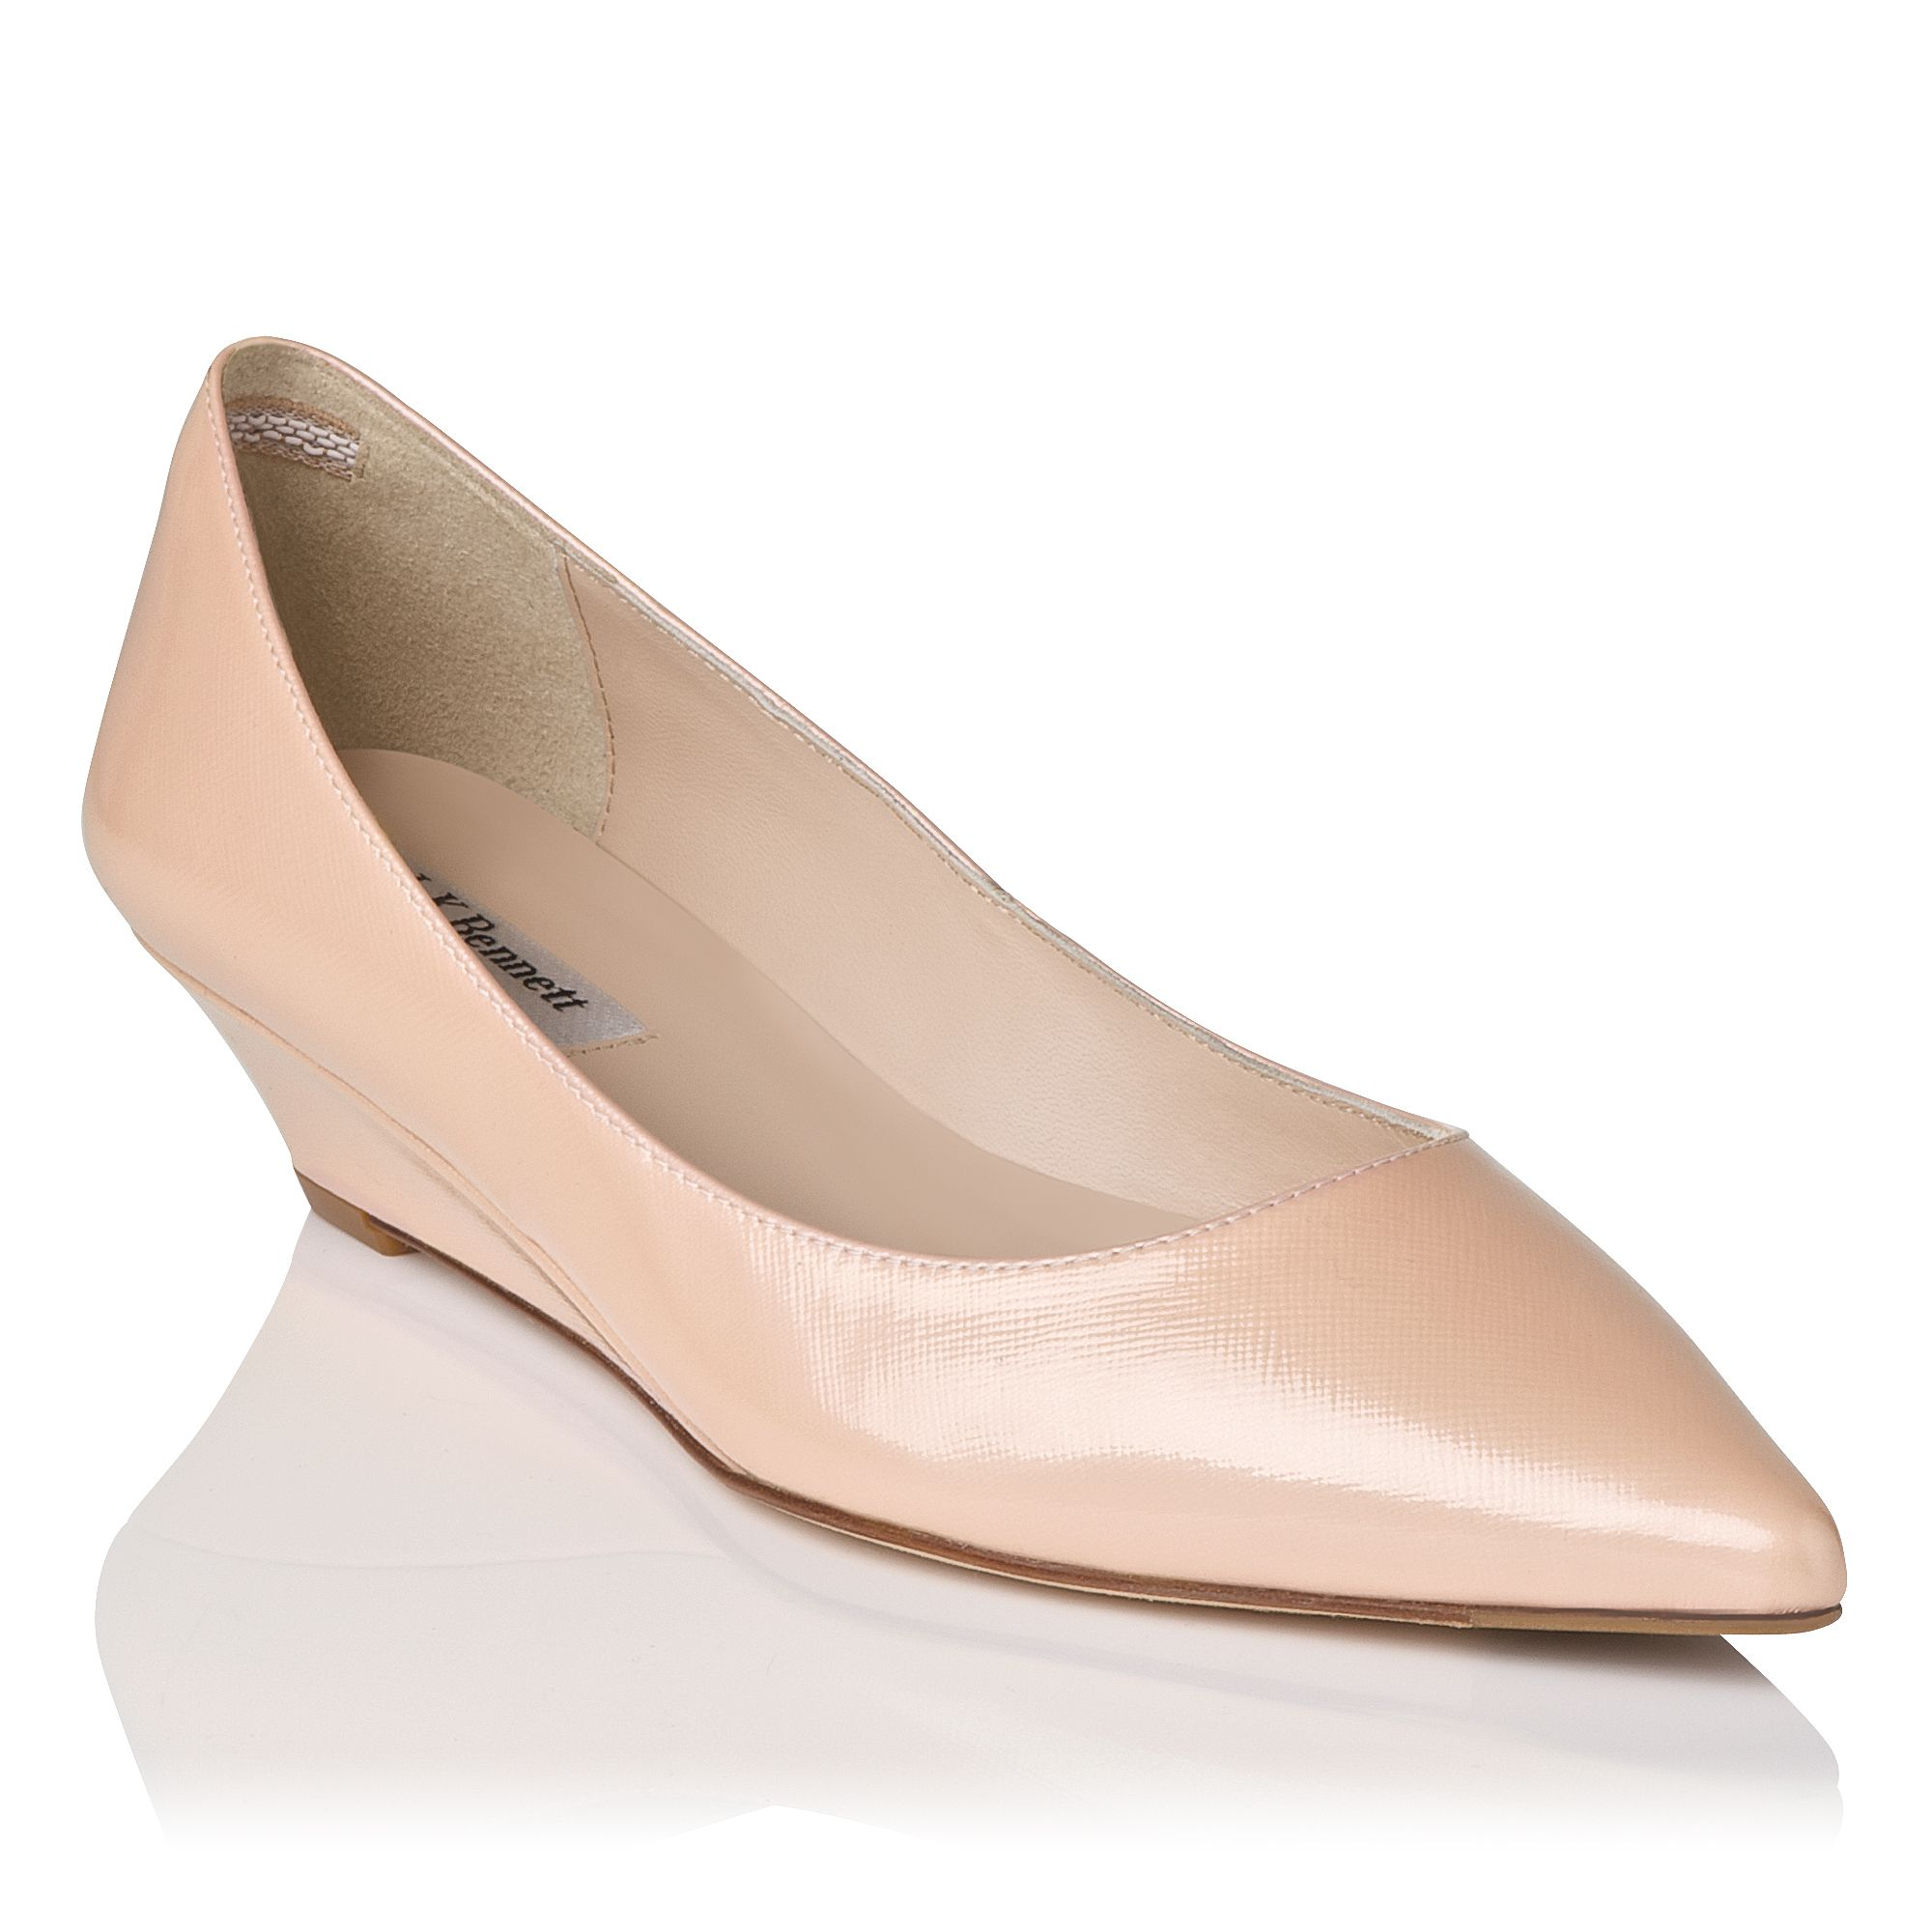 Perla pointed court shoes